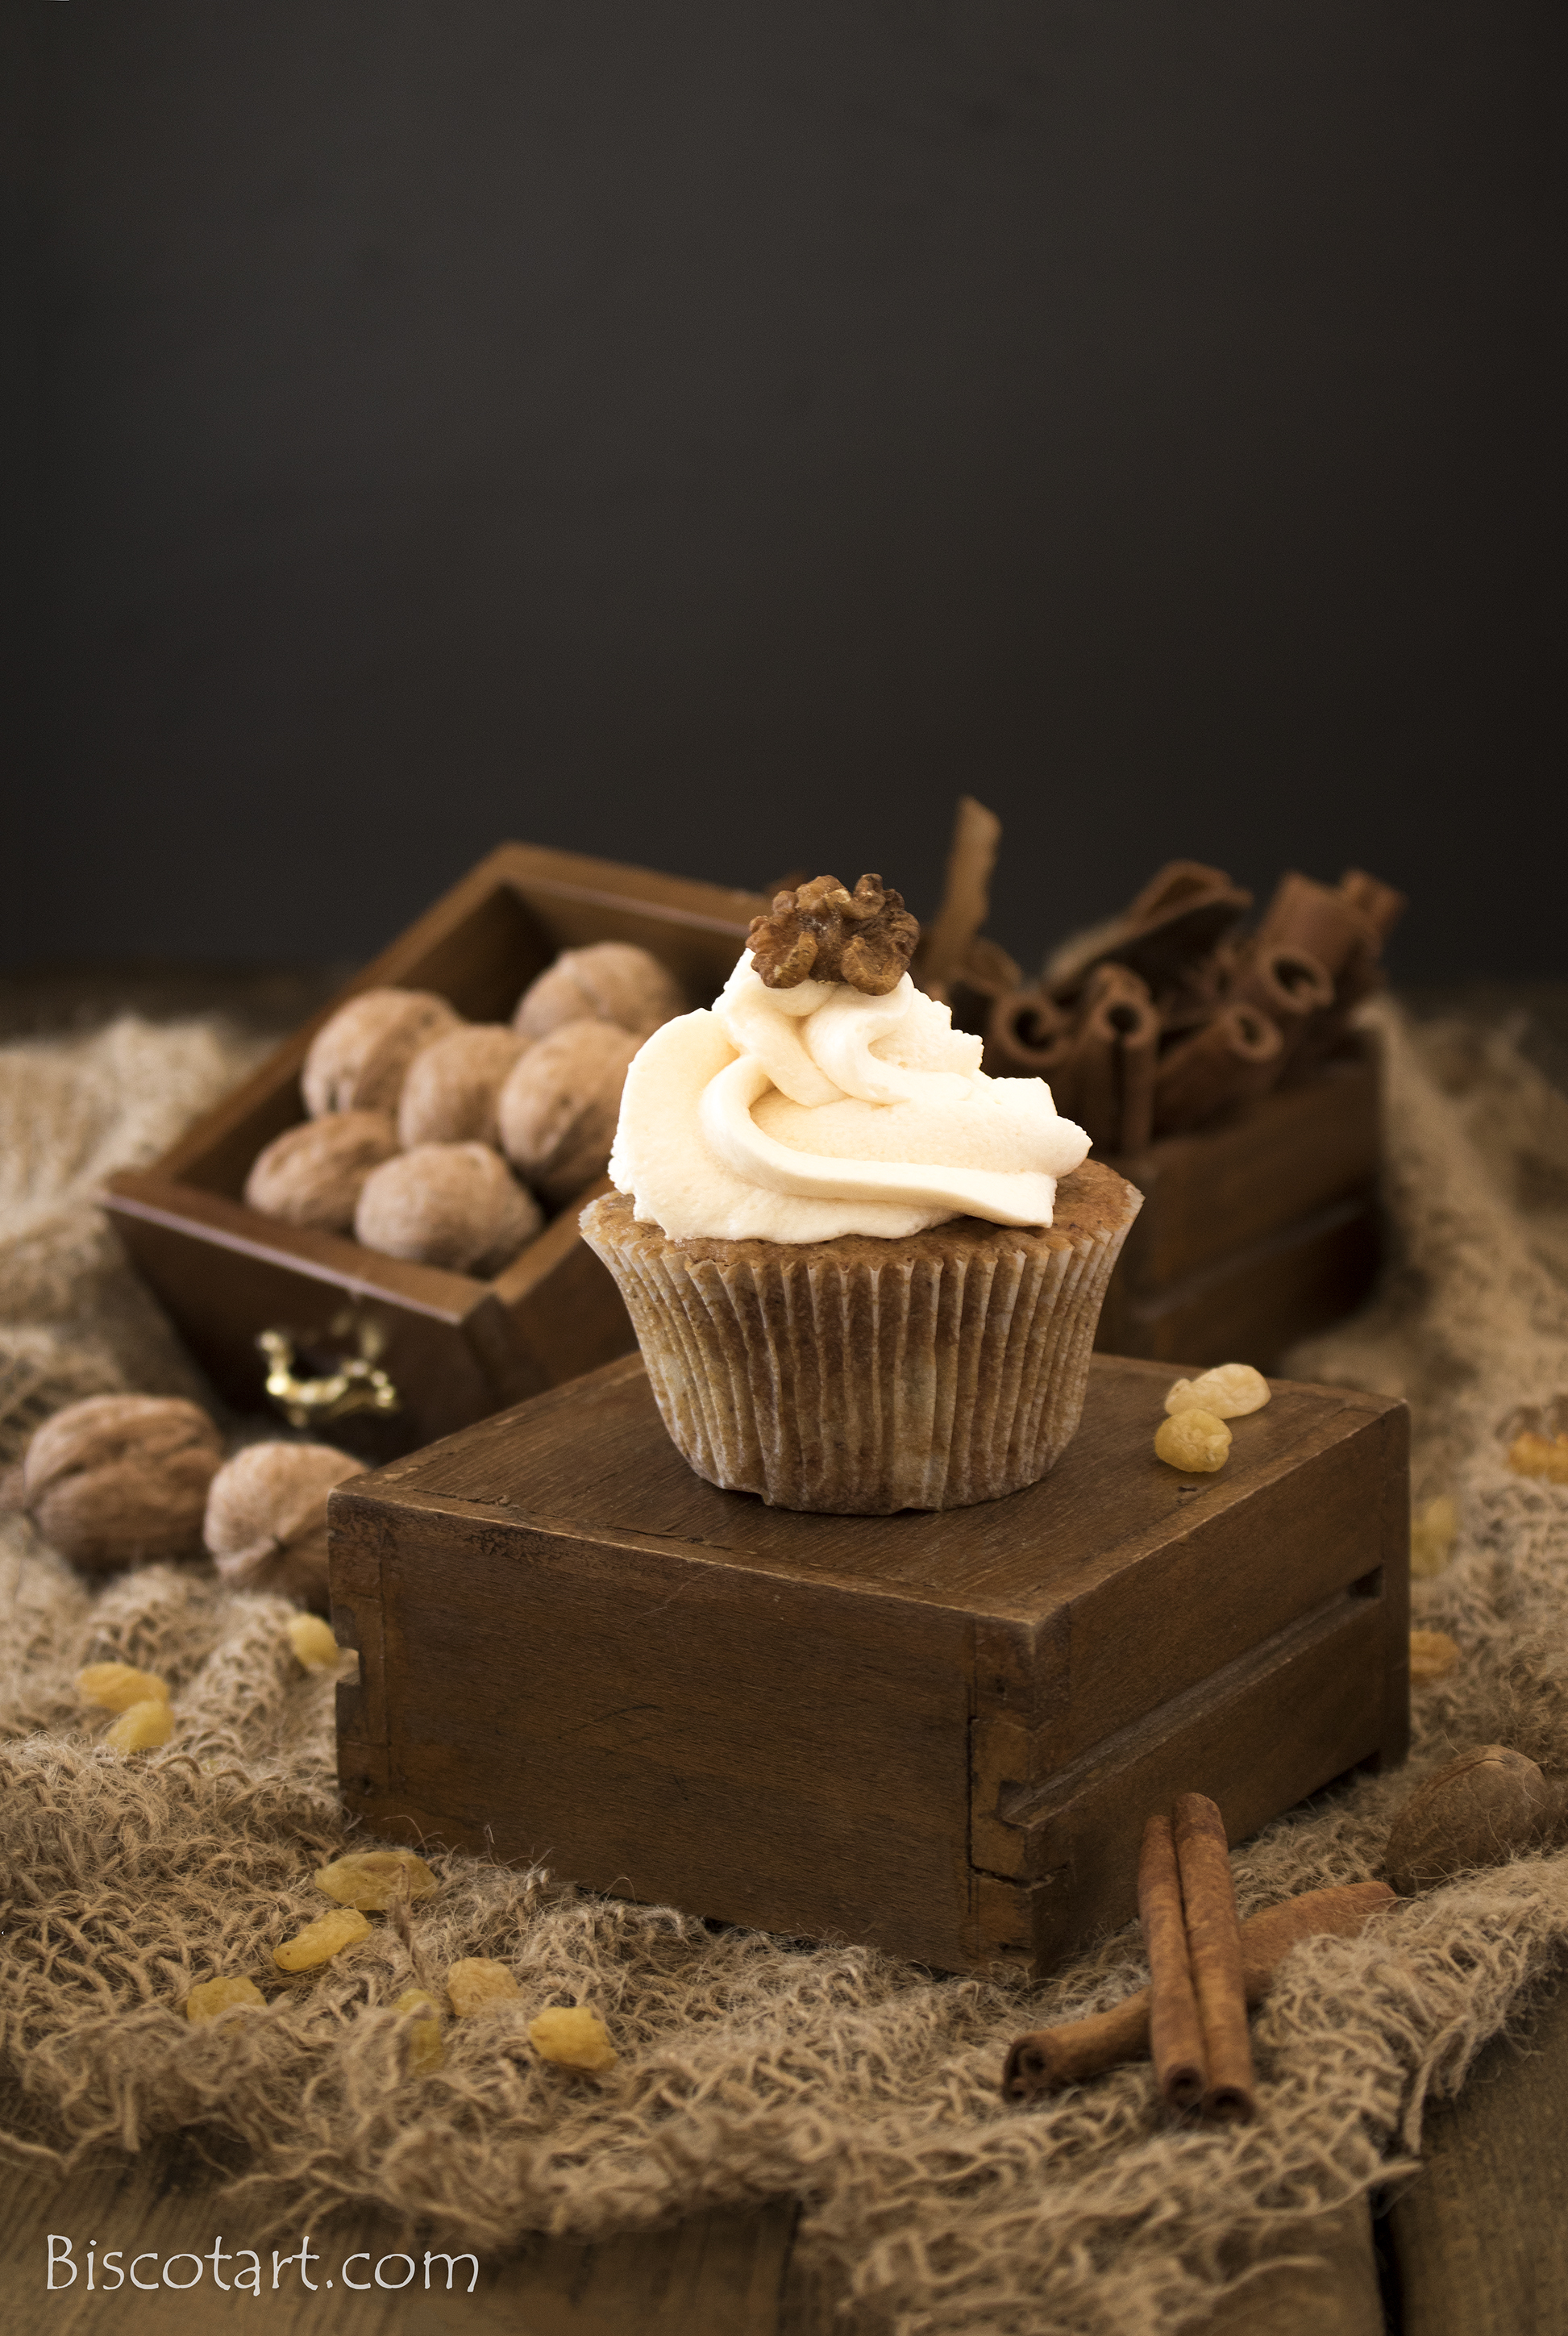 Spice cupcake with raisins